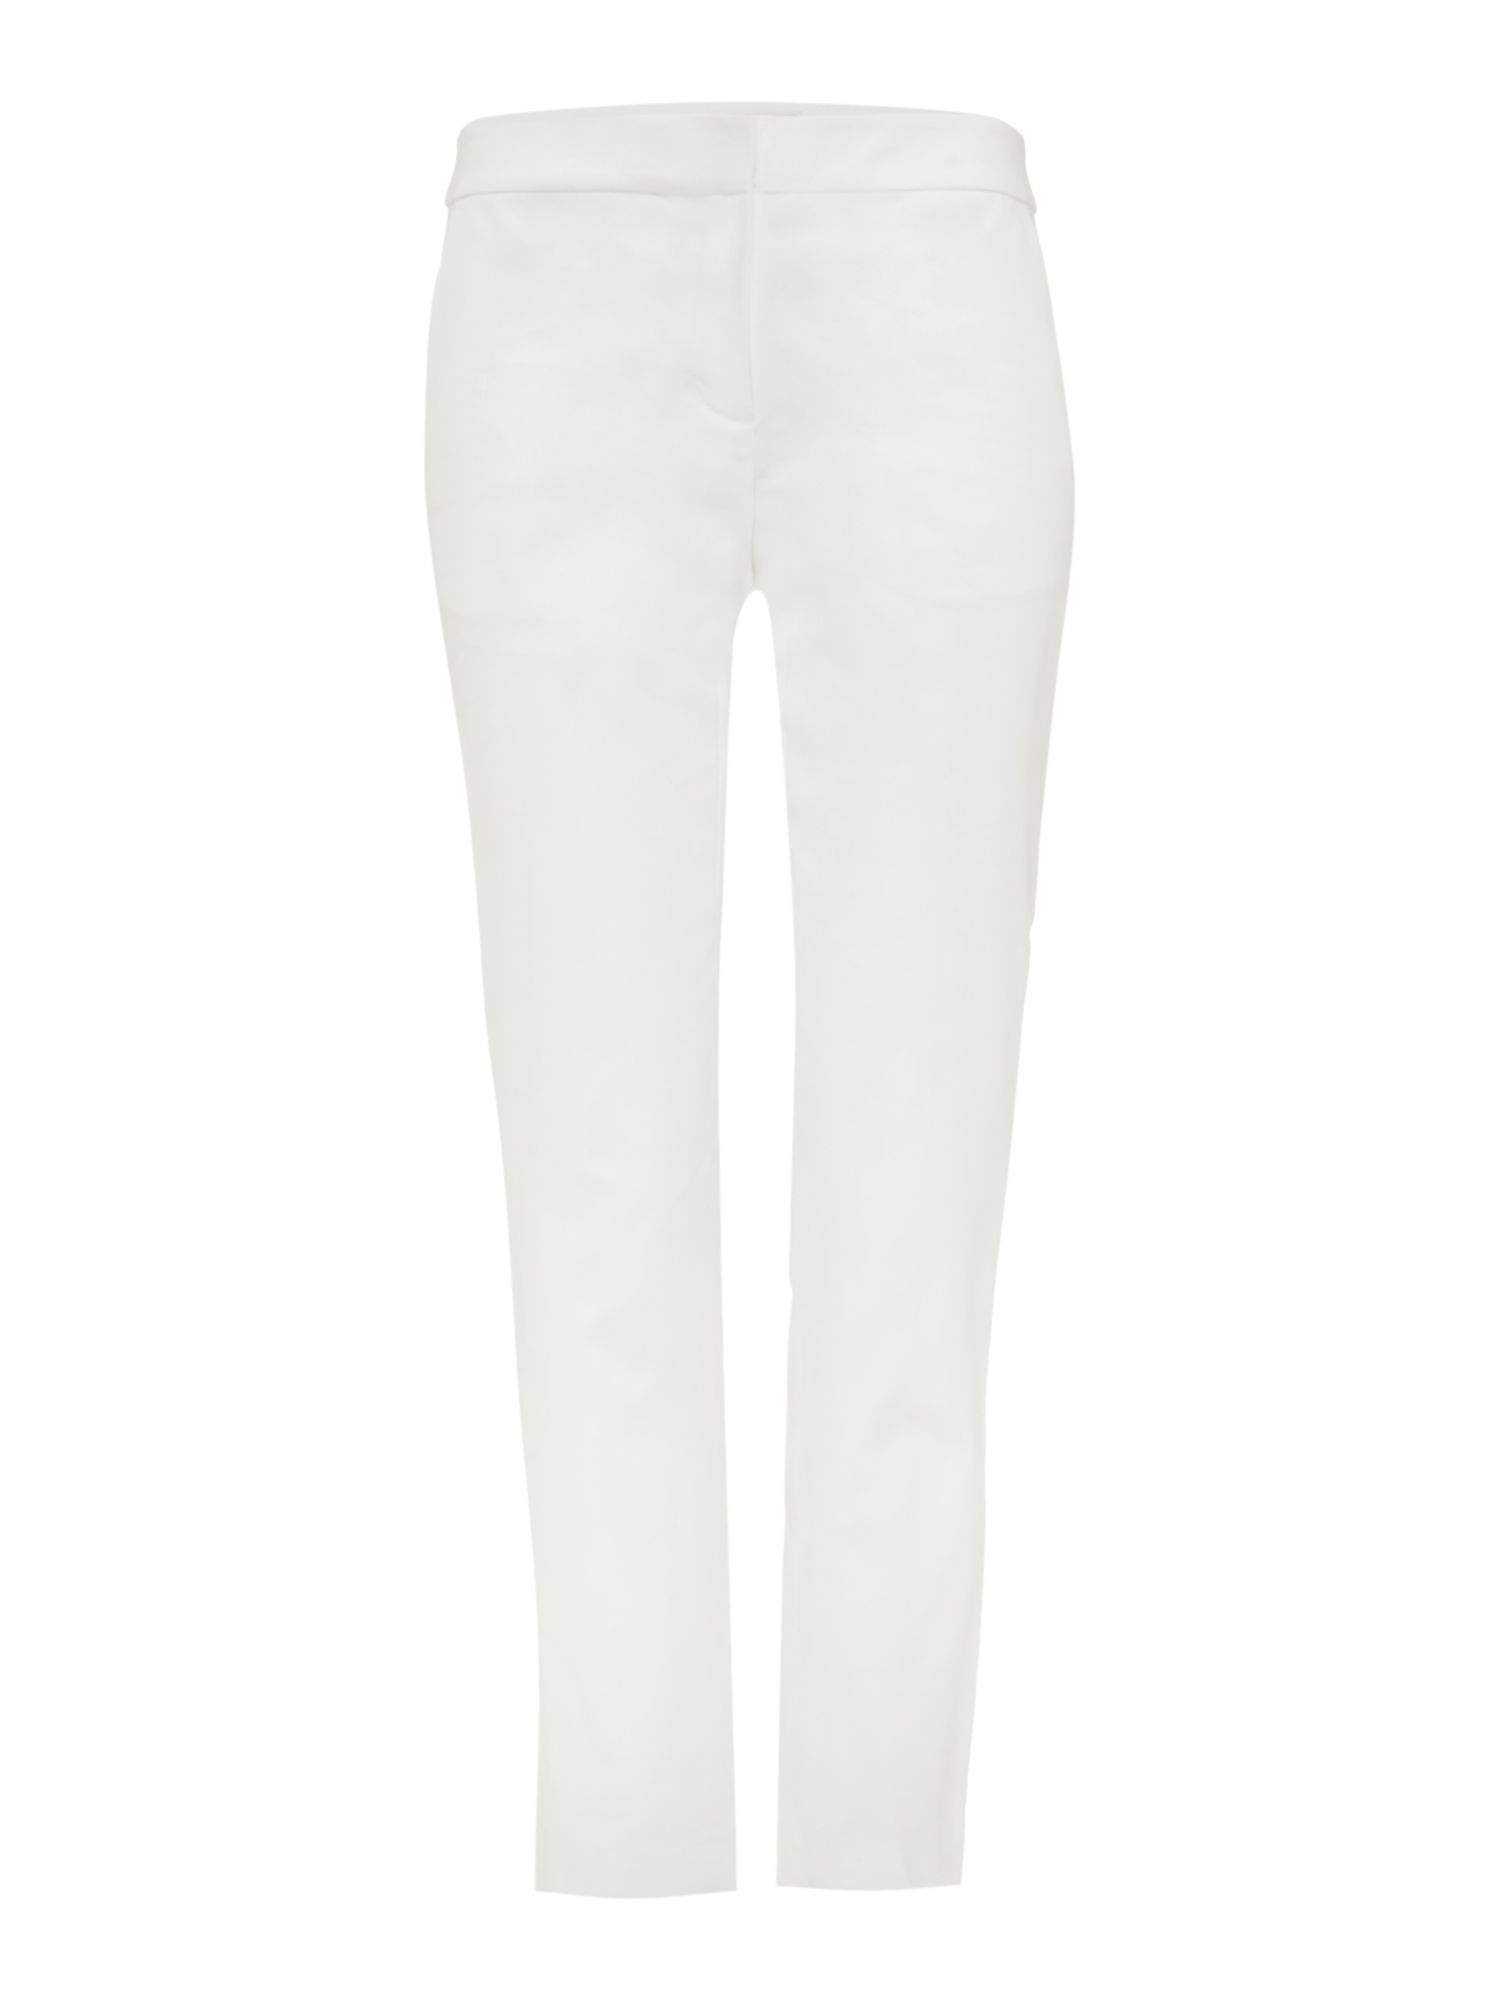 Michael Kors Cropped tapered cigarette trouser, White